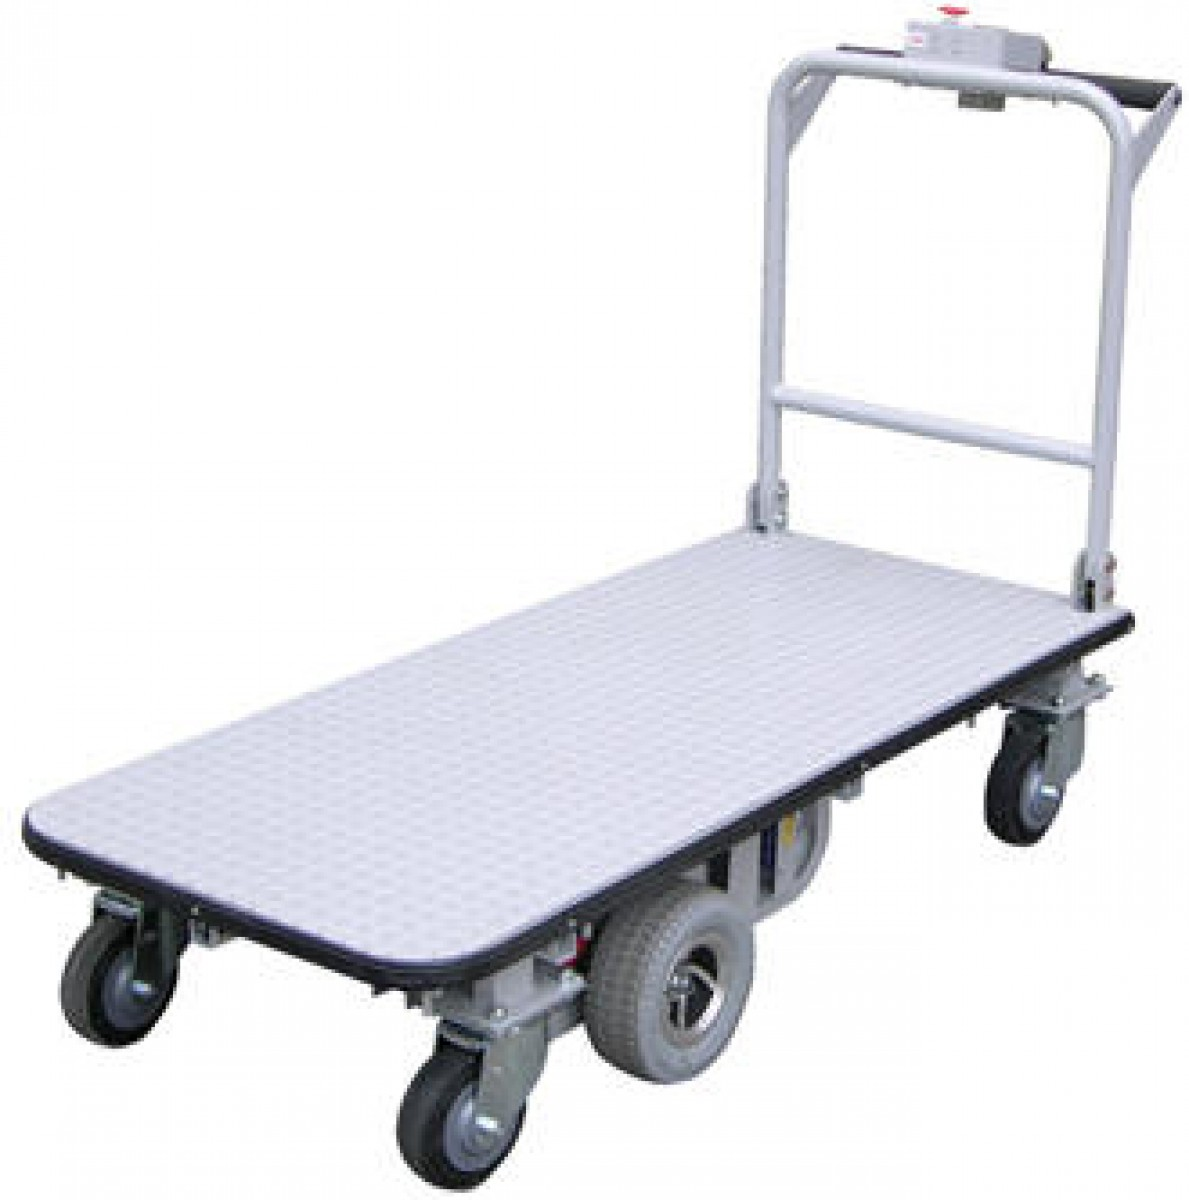 Self Propelled Cart >> Electric Battery Powered Carts, Automatic Carts, Electric Carts, Self Propelled Carts, Power Carts